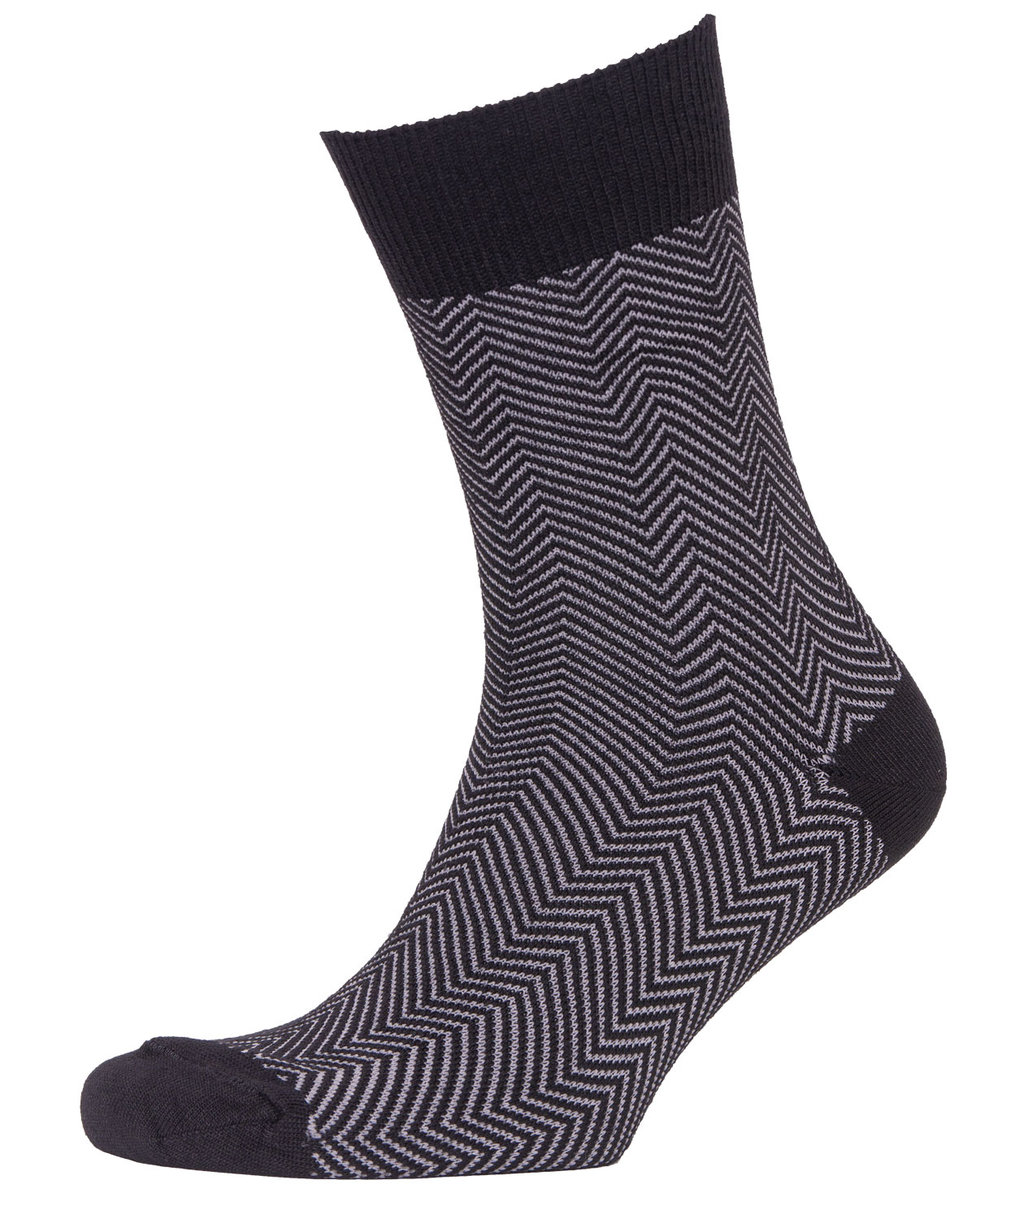 Claudio Fishbone bamboo socks, Black/Light Grey